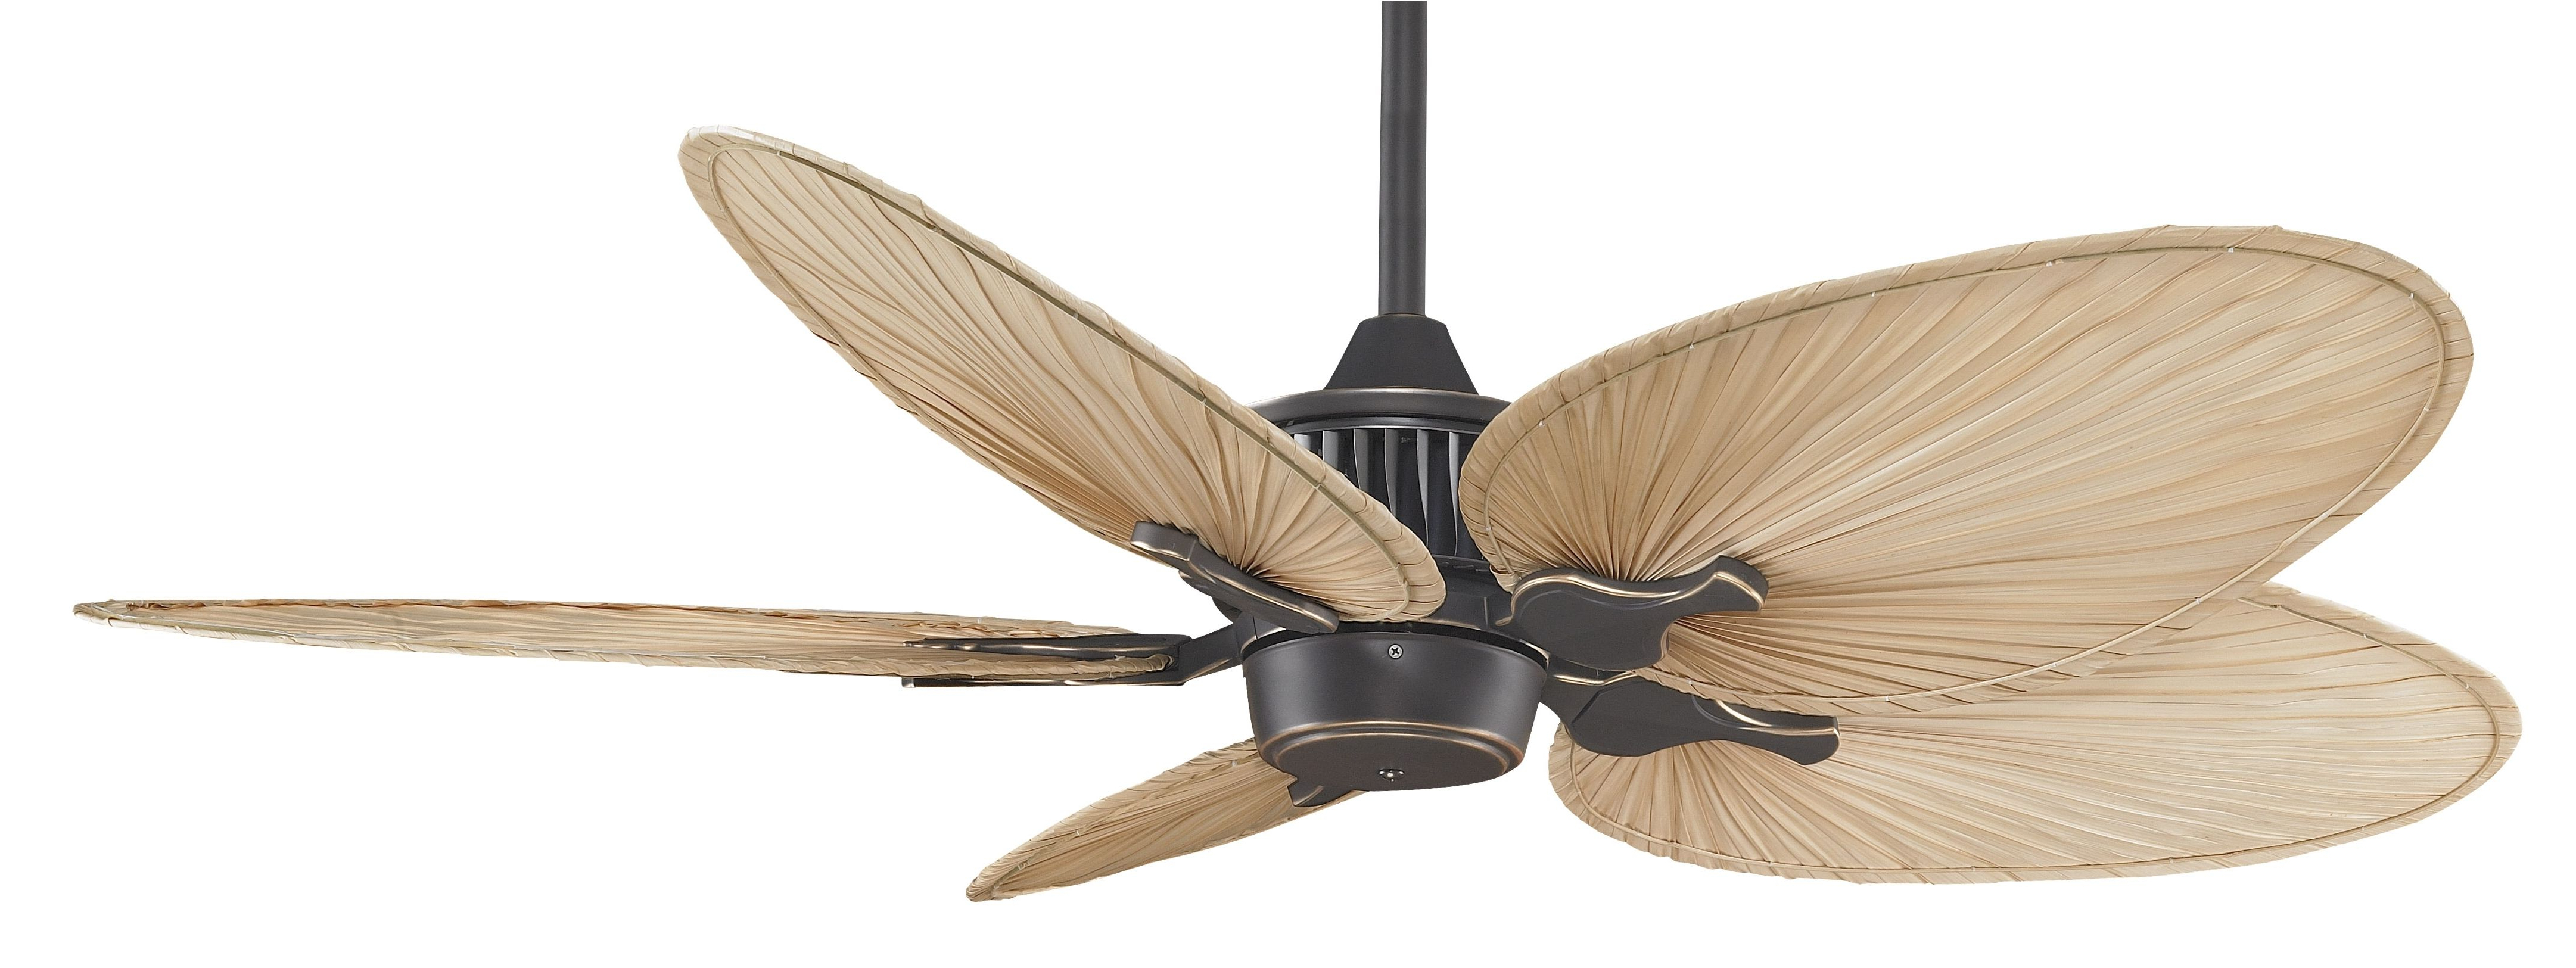 Stewardson 4 Blade Ceiling Fans In 2020 Decorations Emerson Ceiling Fans Adorable Good Design Award (View 8 of 20)